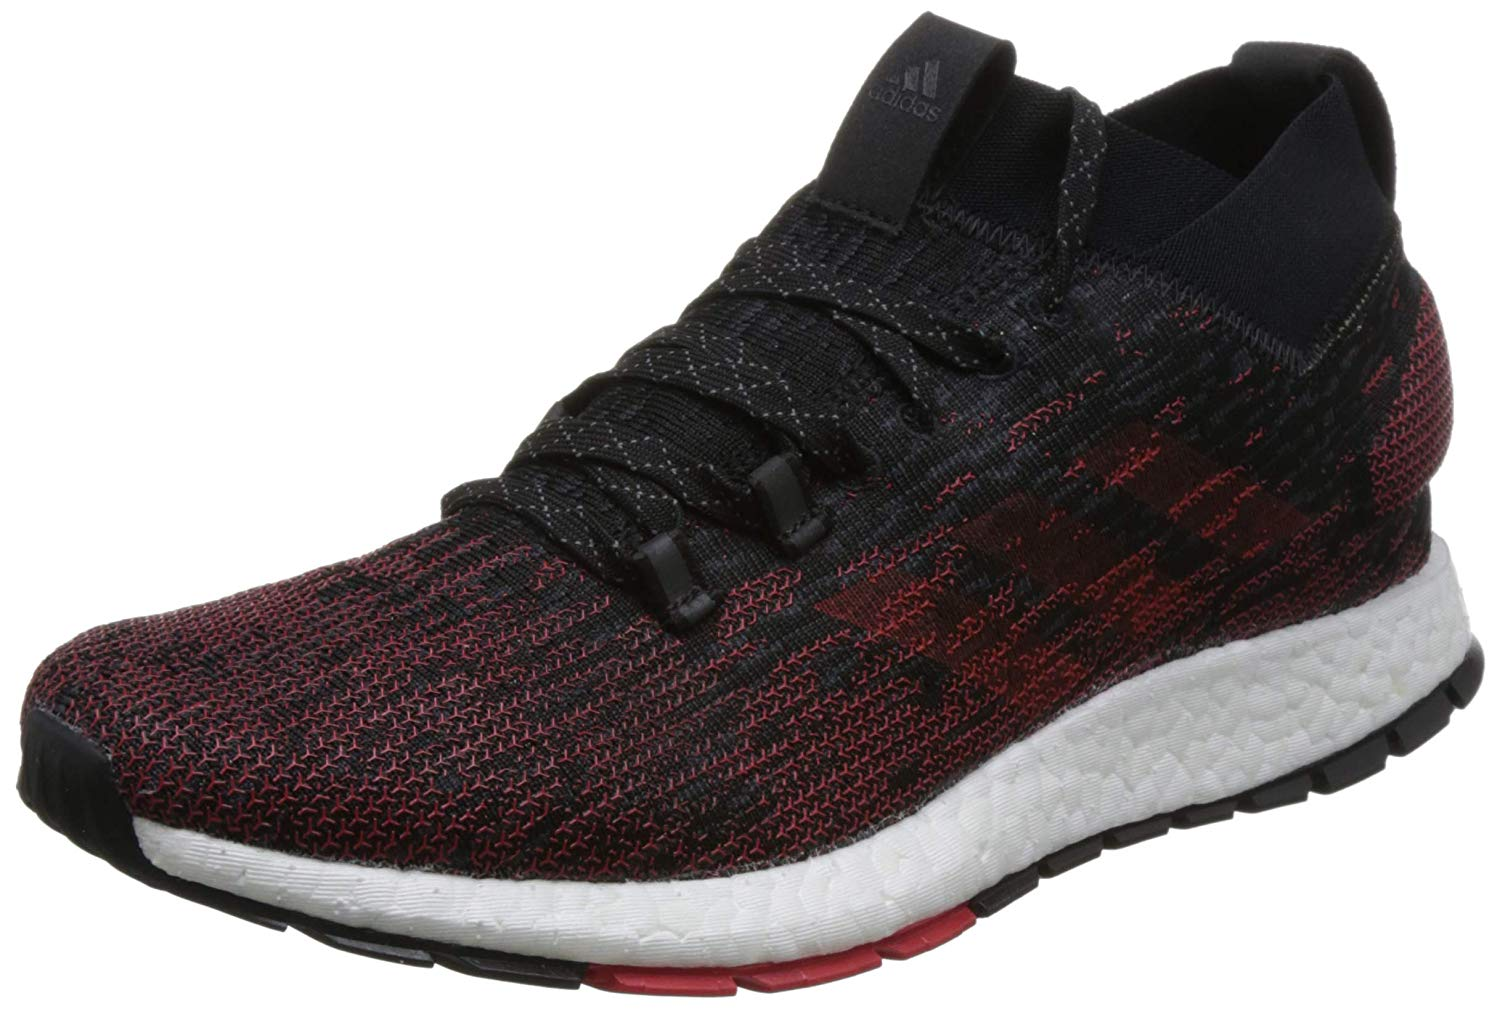 magasin d'usine 7c975 380ab Adidas Pureboost RBL Reviewed & Rated in 2019   WalkJogRun